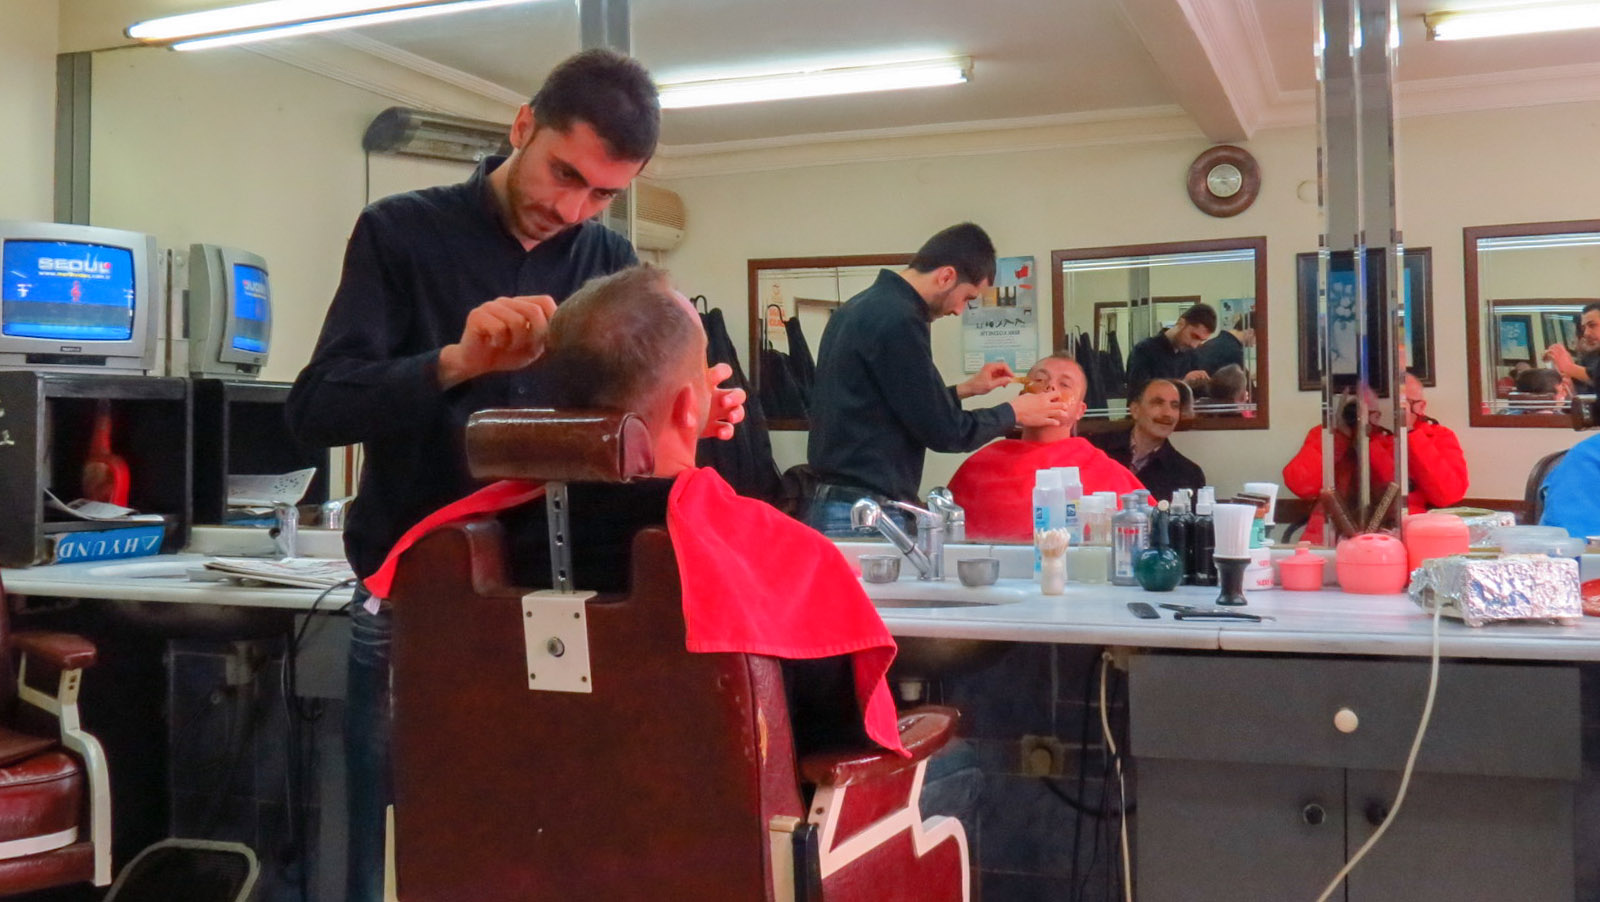 Male Pampering Getting A Shave In Turkey Flashpacking